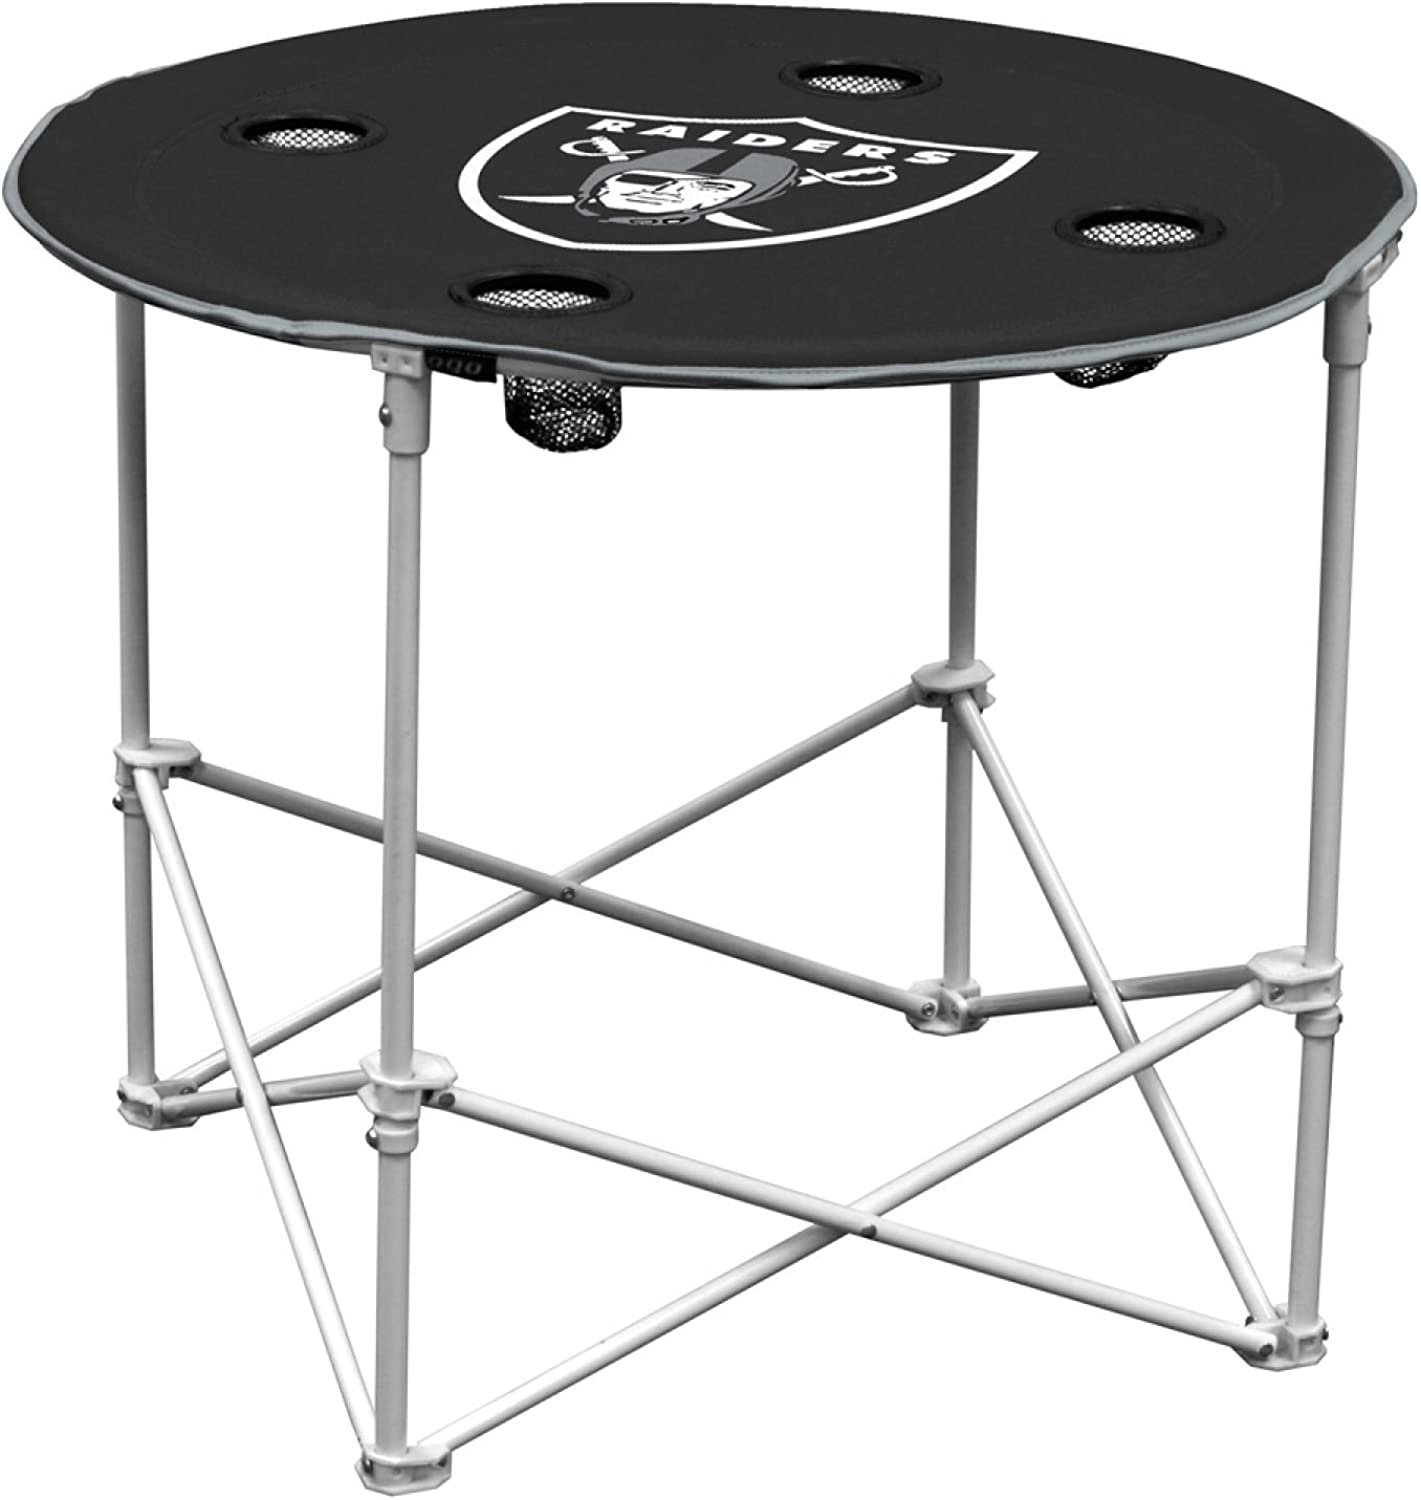 NFL Logo Brands Oakland Raiders Collapsible Round Table with 4 Cup Holders and Carry Bag, Team Color